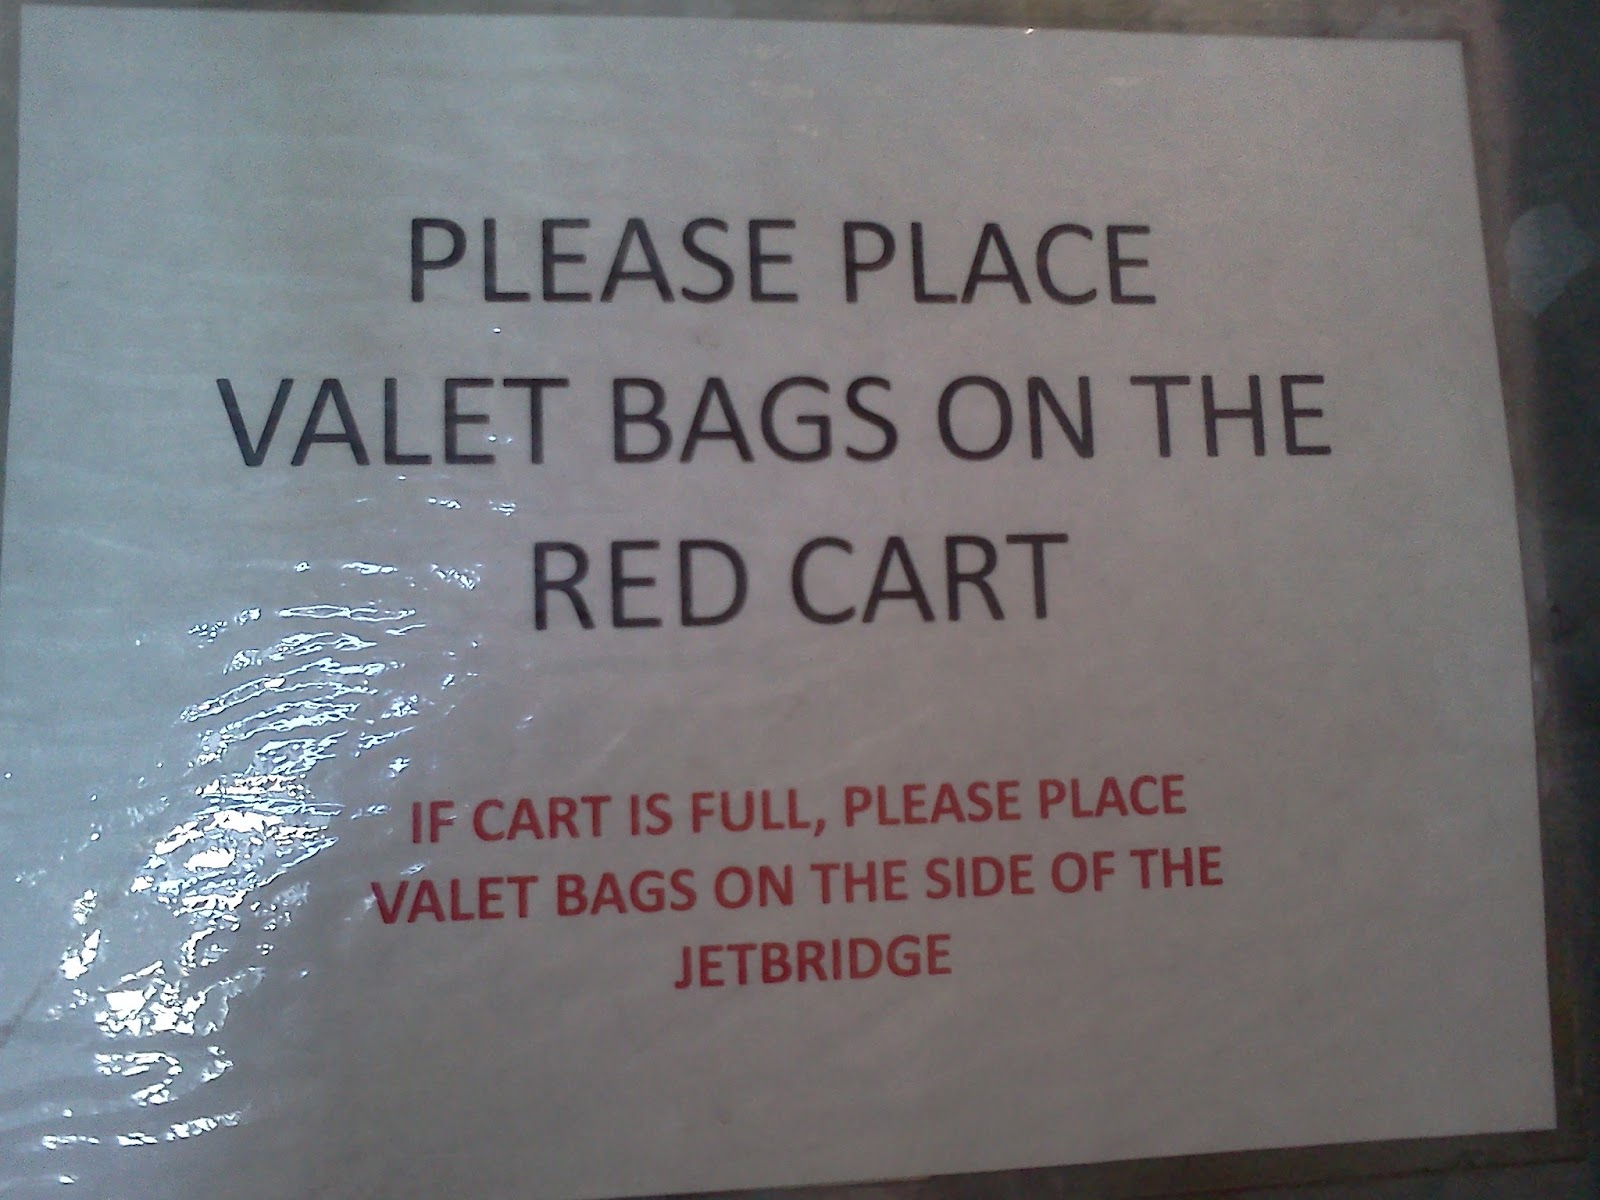 Please Place Valet Bags On The Red Cart